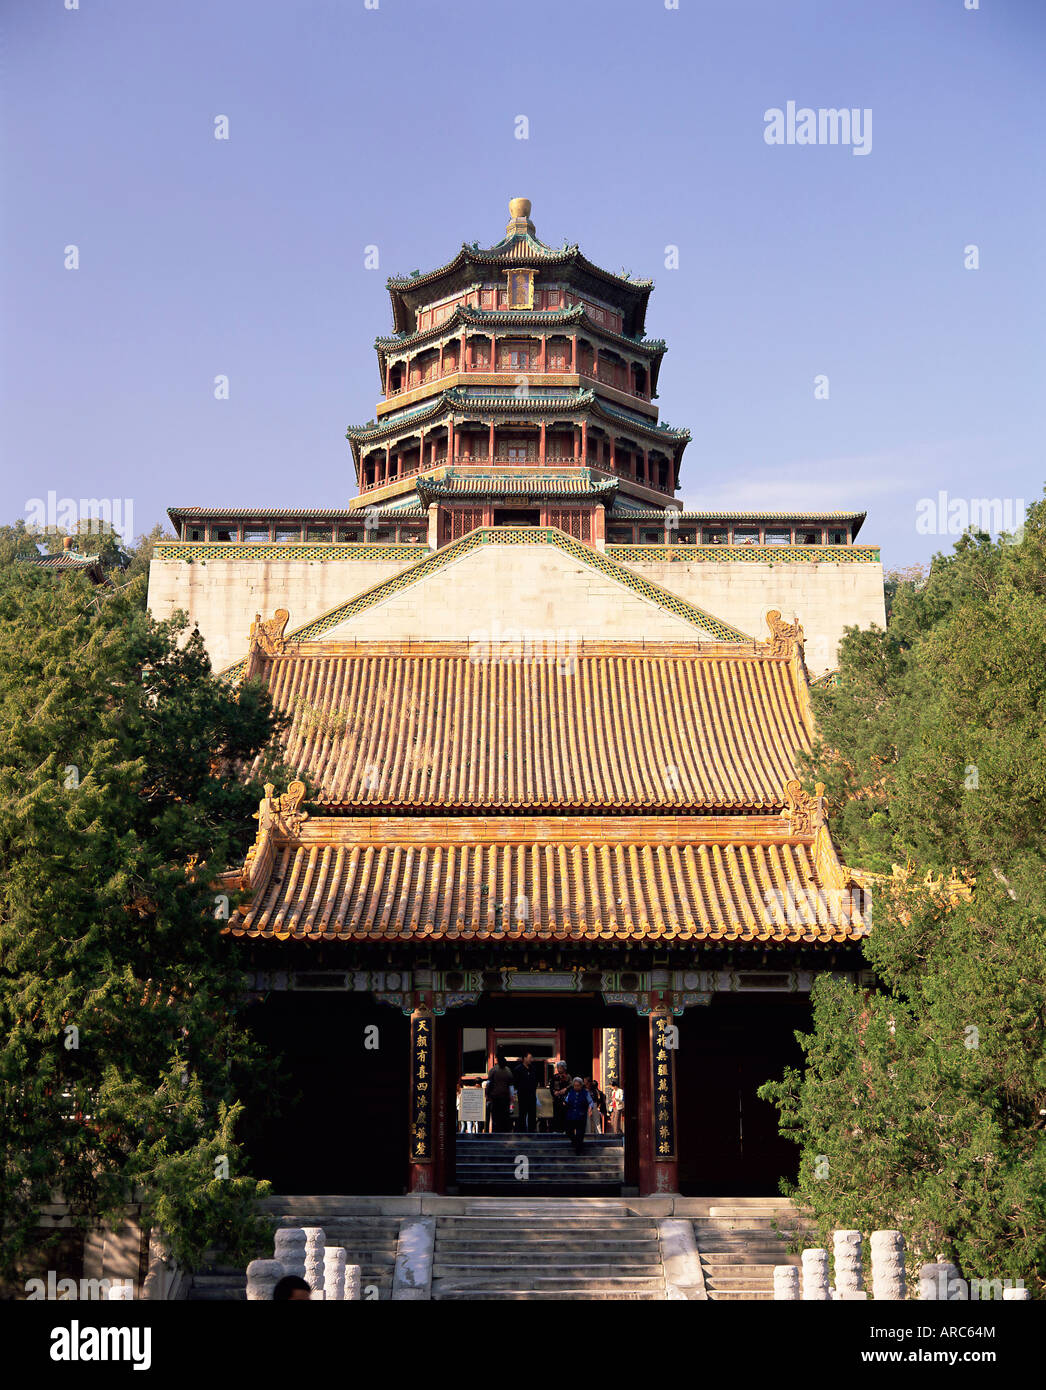 Qing architecture, Huihai Si, Sea of Wisdom temple, the Summer Palace, Beijing, China, Asia - Stock Image